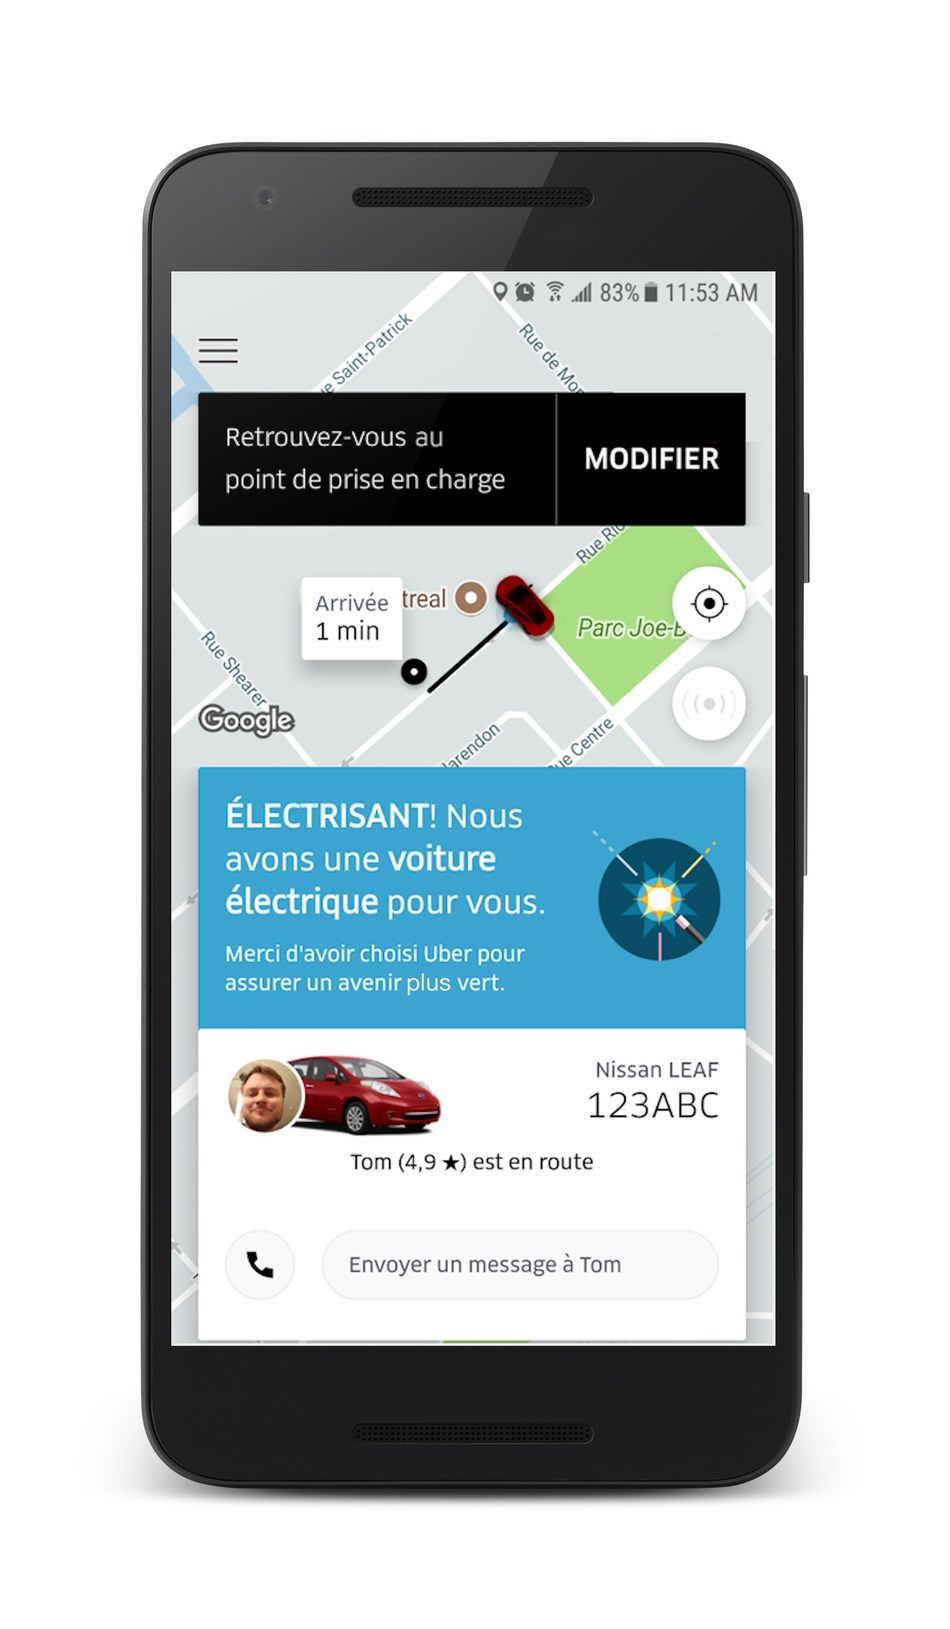 Screenshot of an UberÉLECTRIQUE ride in Montreal (CNW Group/Uber Canada Inc.)